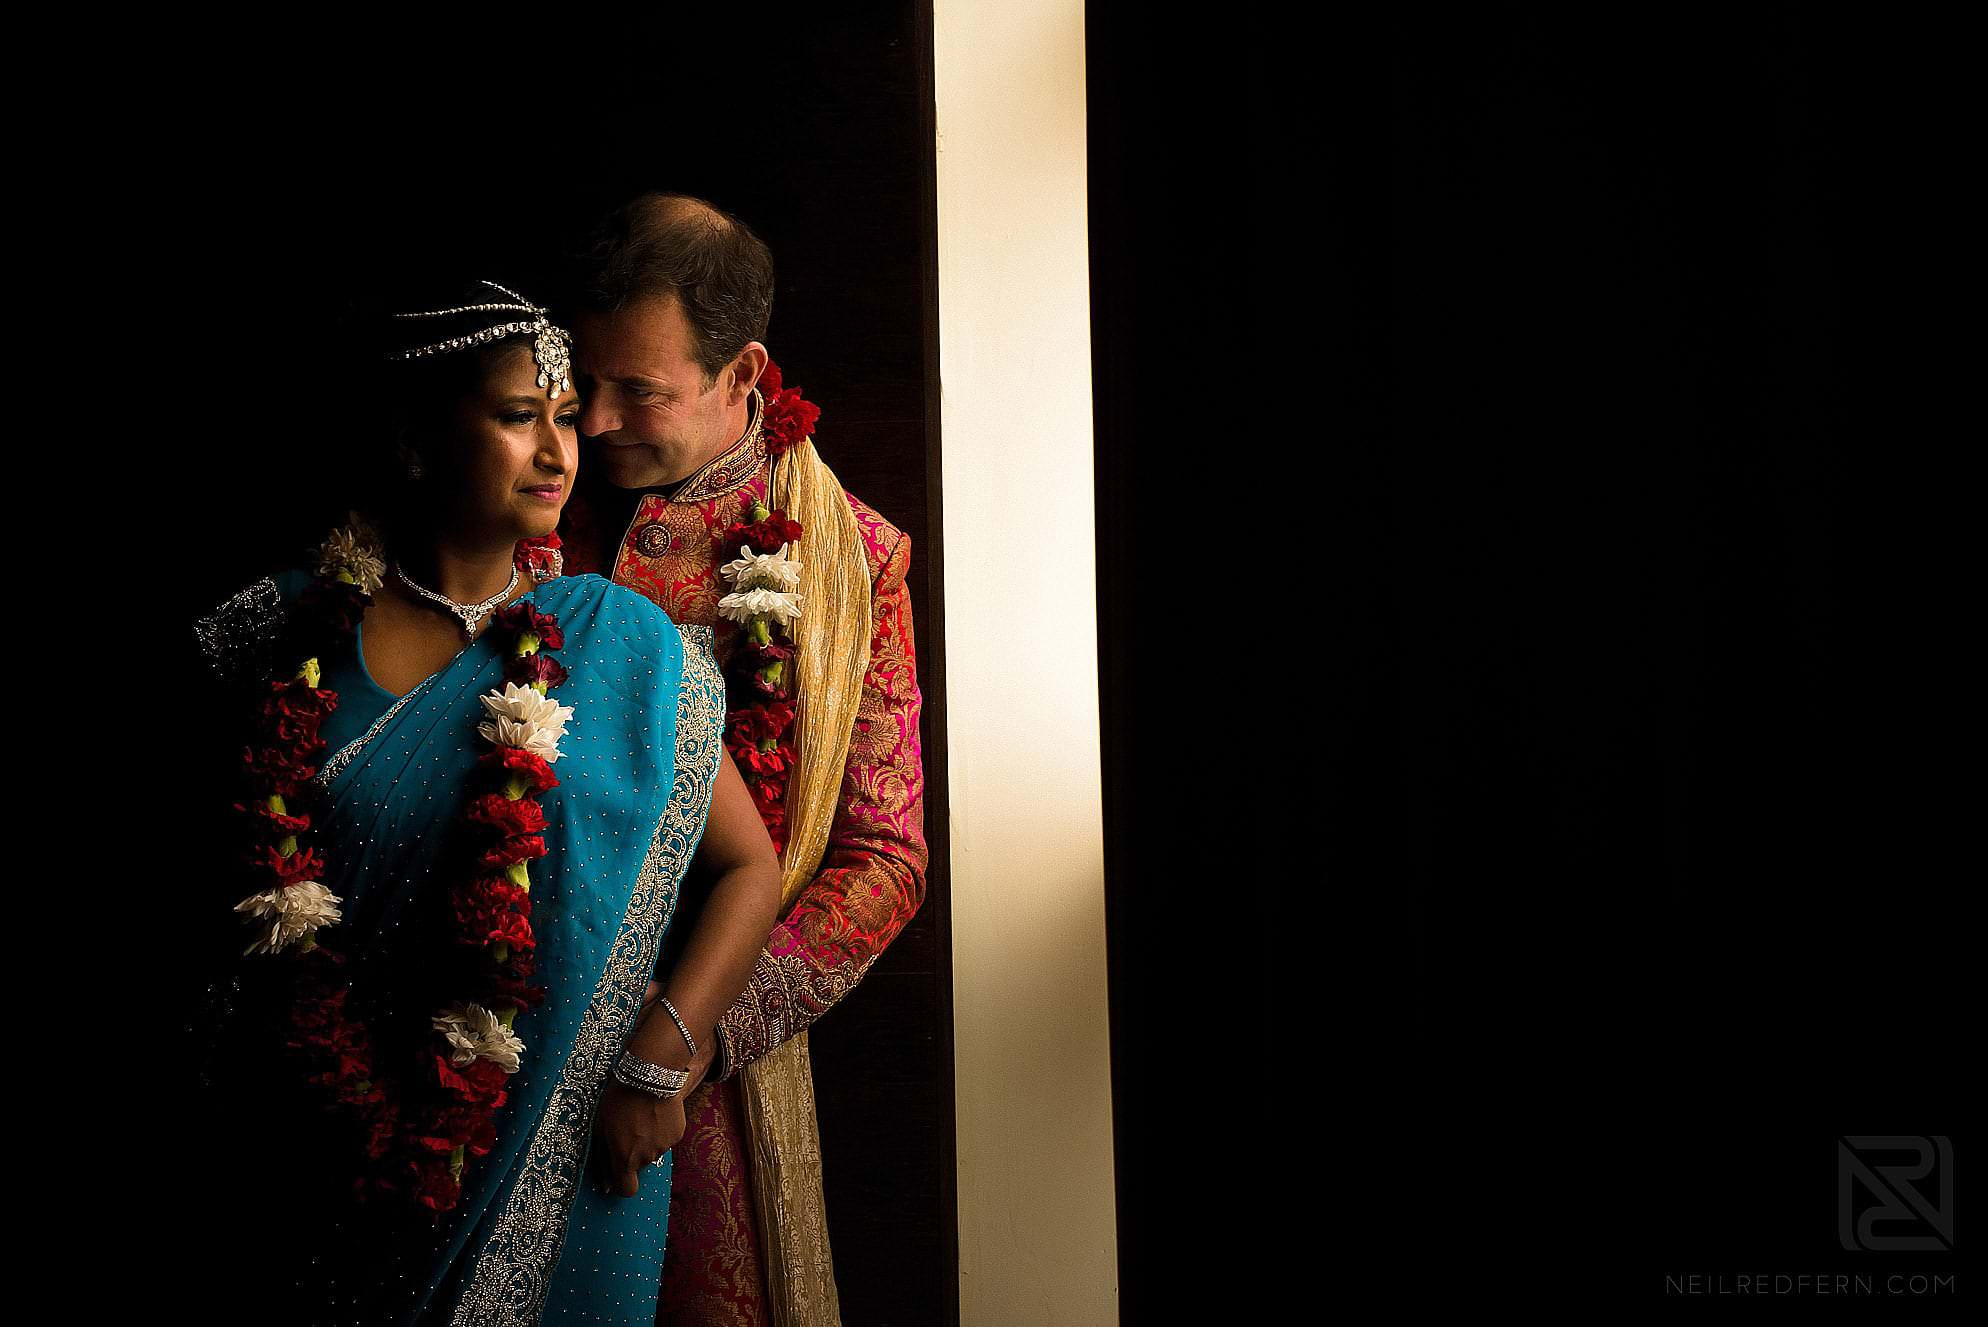 portrait of bride and groom together at Hindu wedding